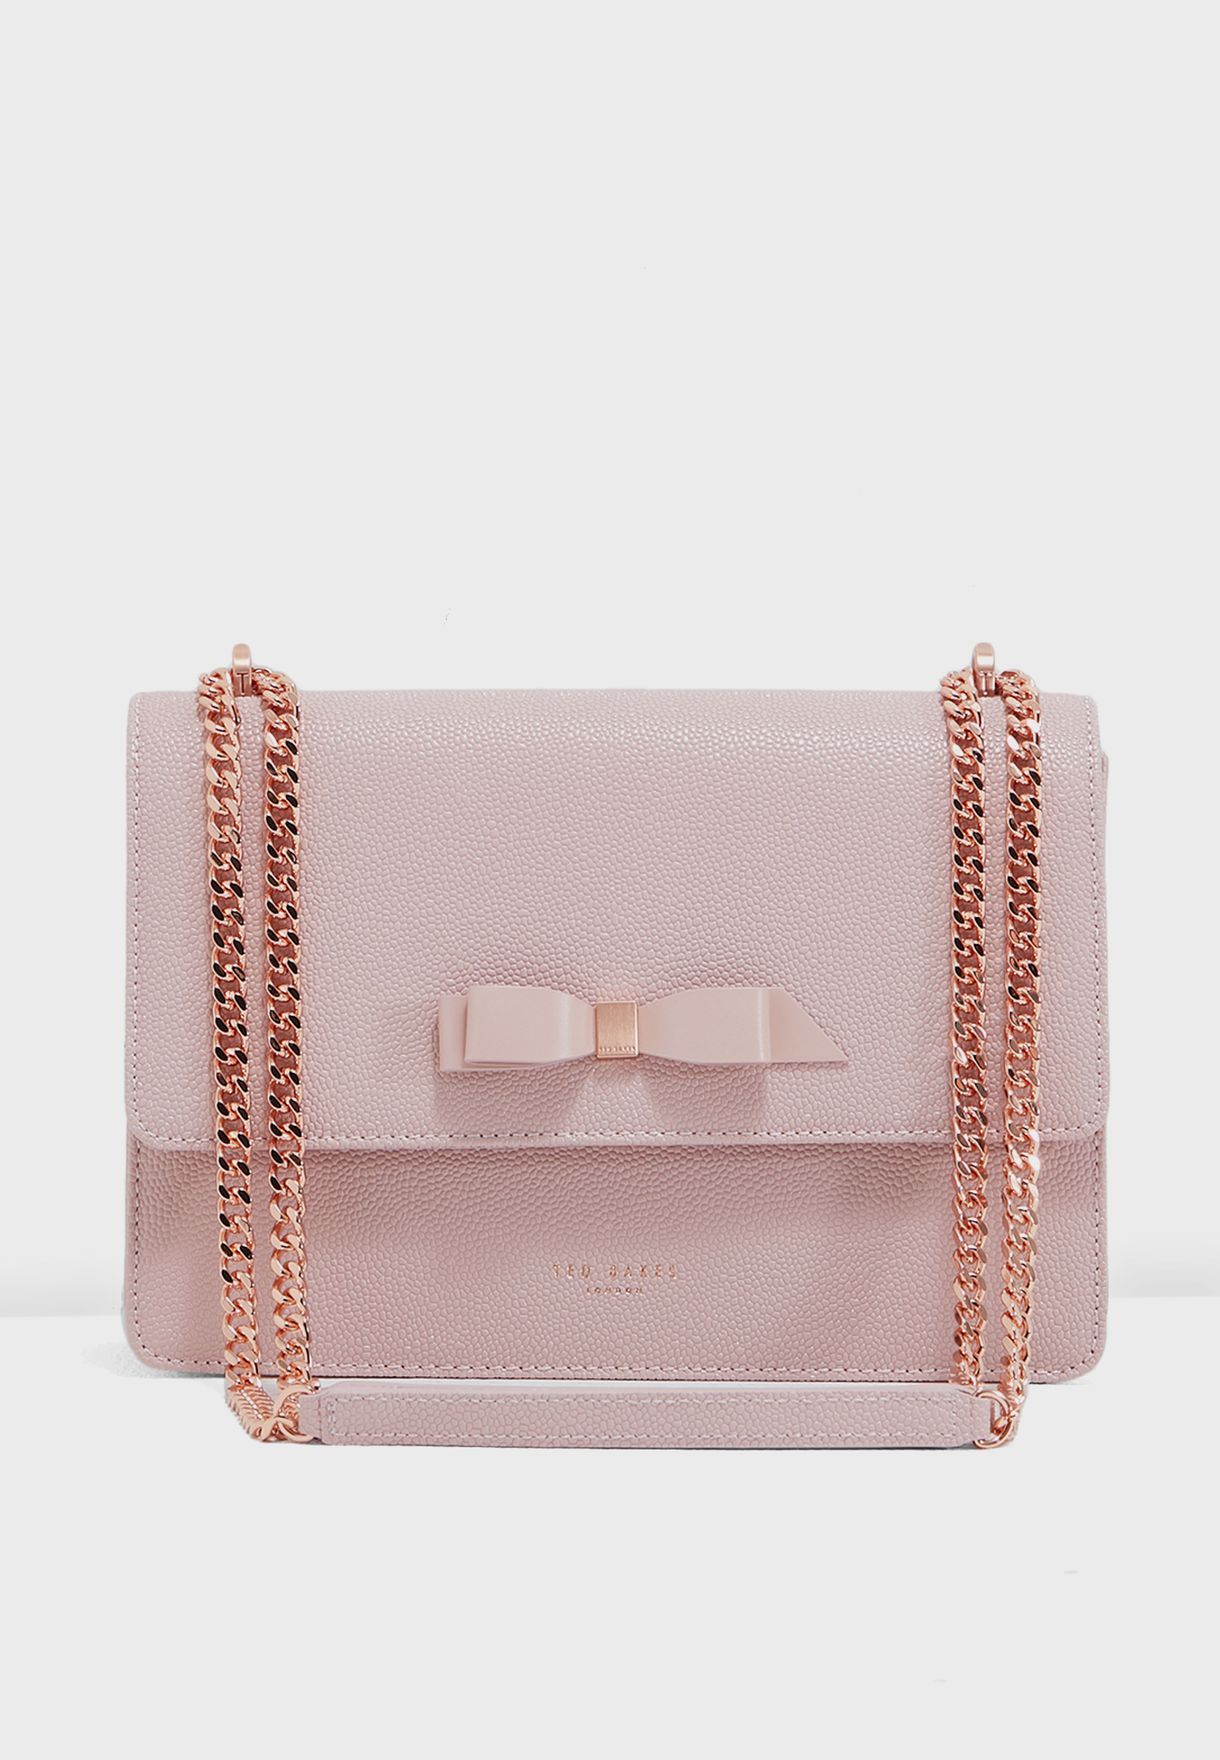 08b2d4a734bb Shop Ted baker pink Joanaa Bow Detail Crossbody 151189 for Women in ...